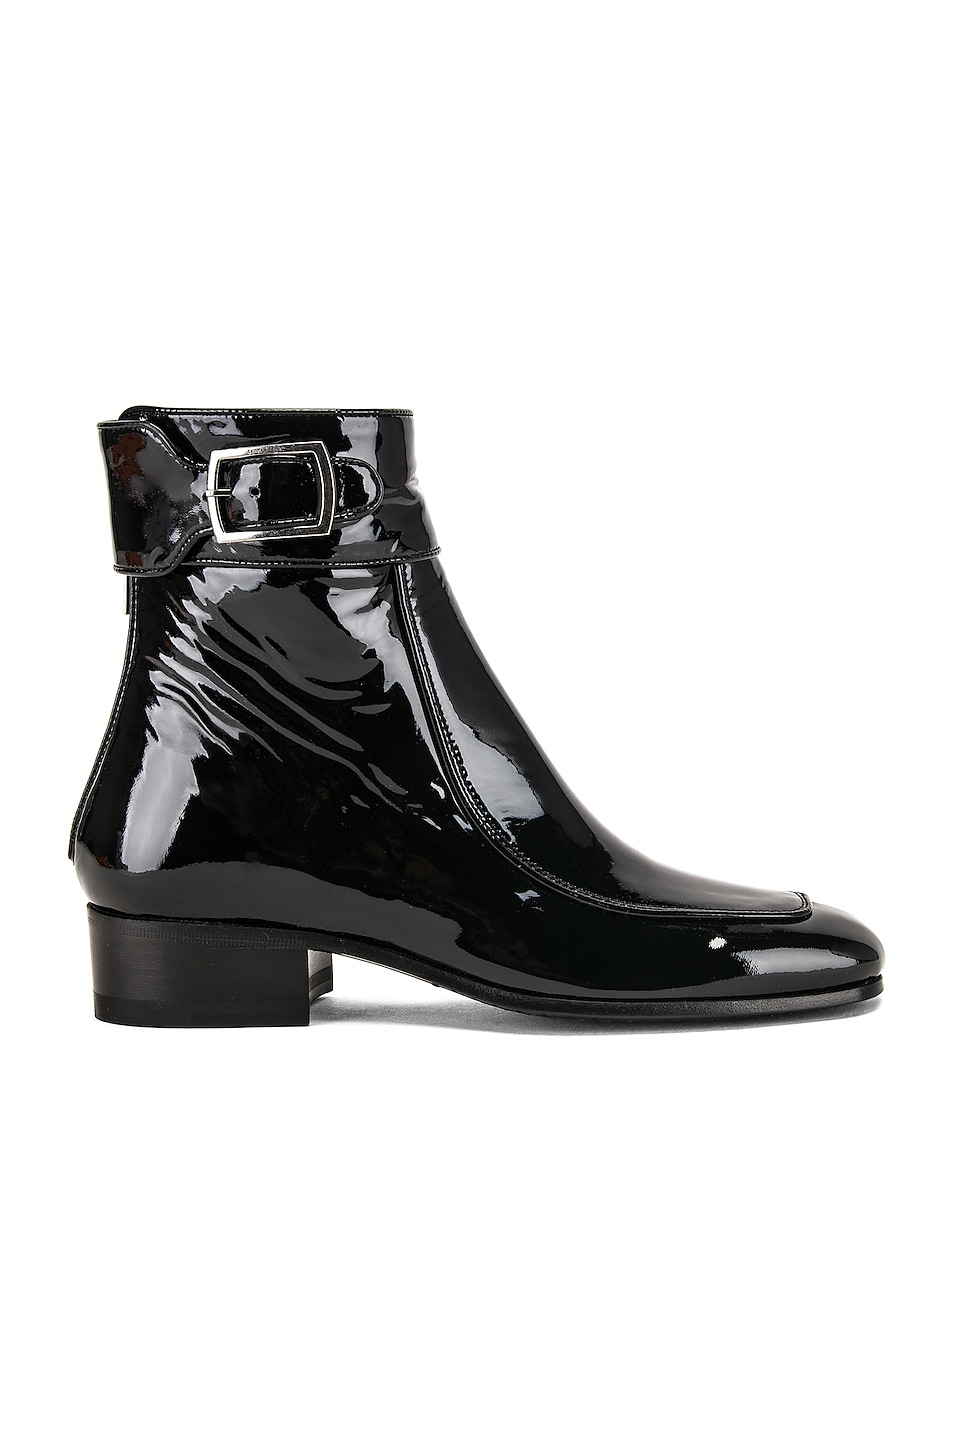 Image 1 of Saint Laurent Miles Bootie in Black